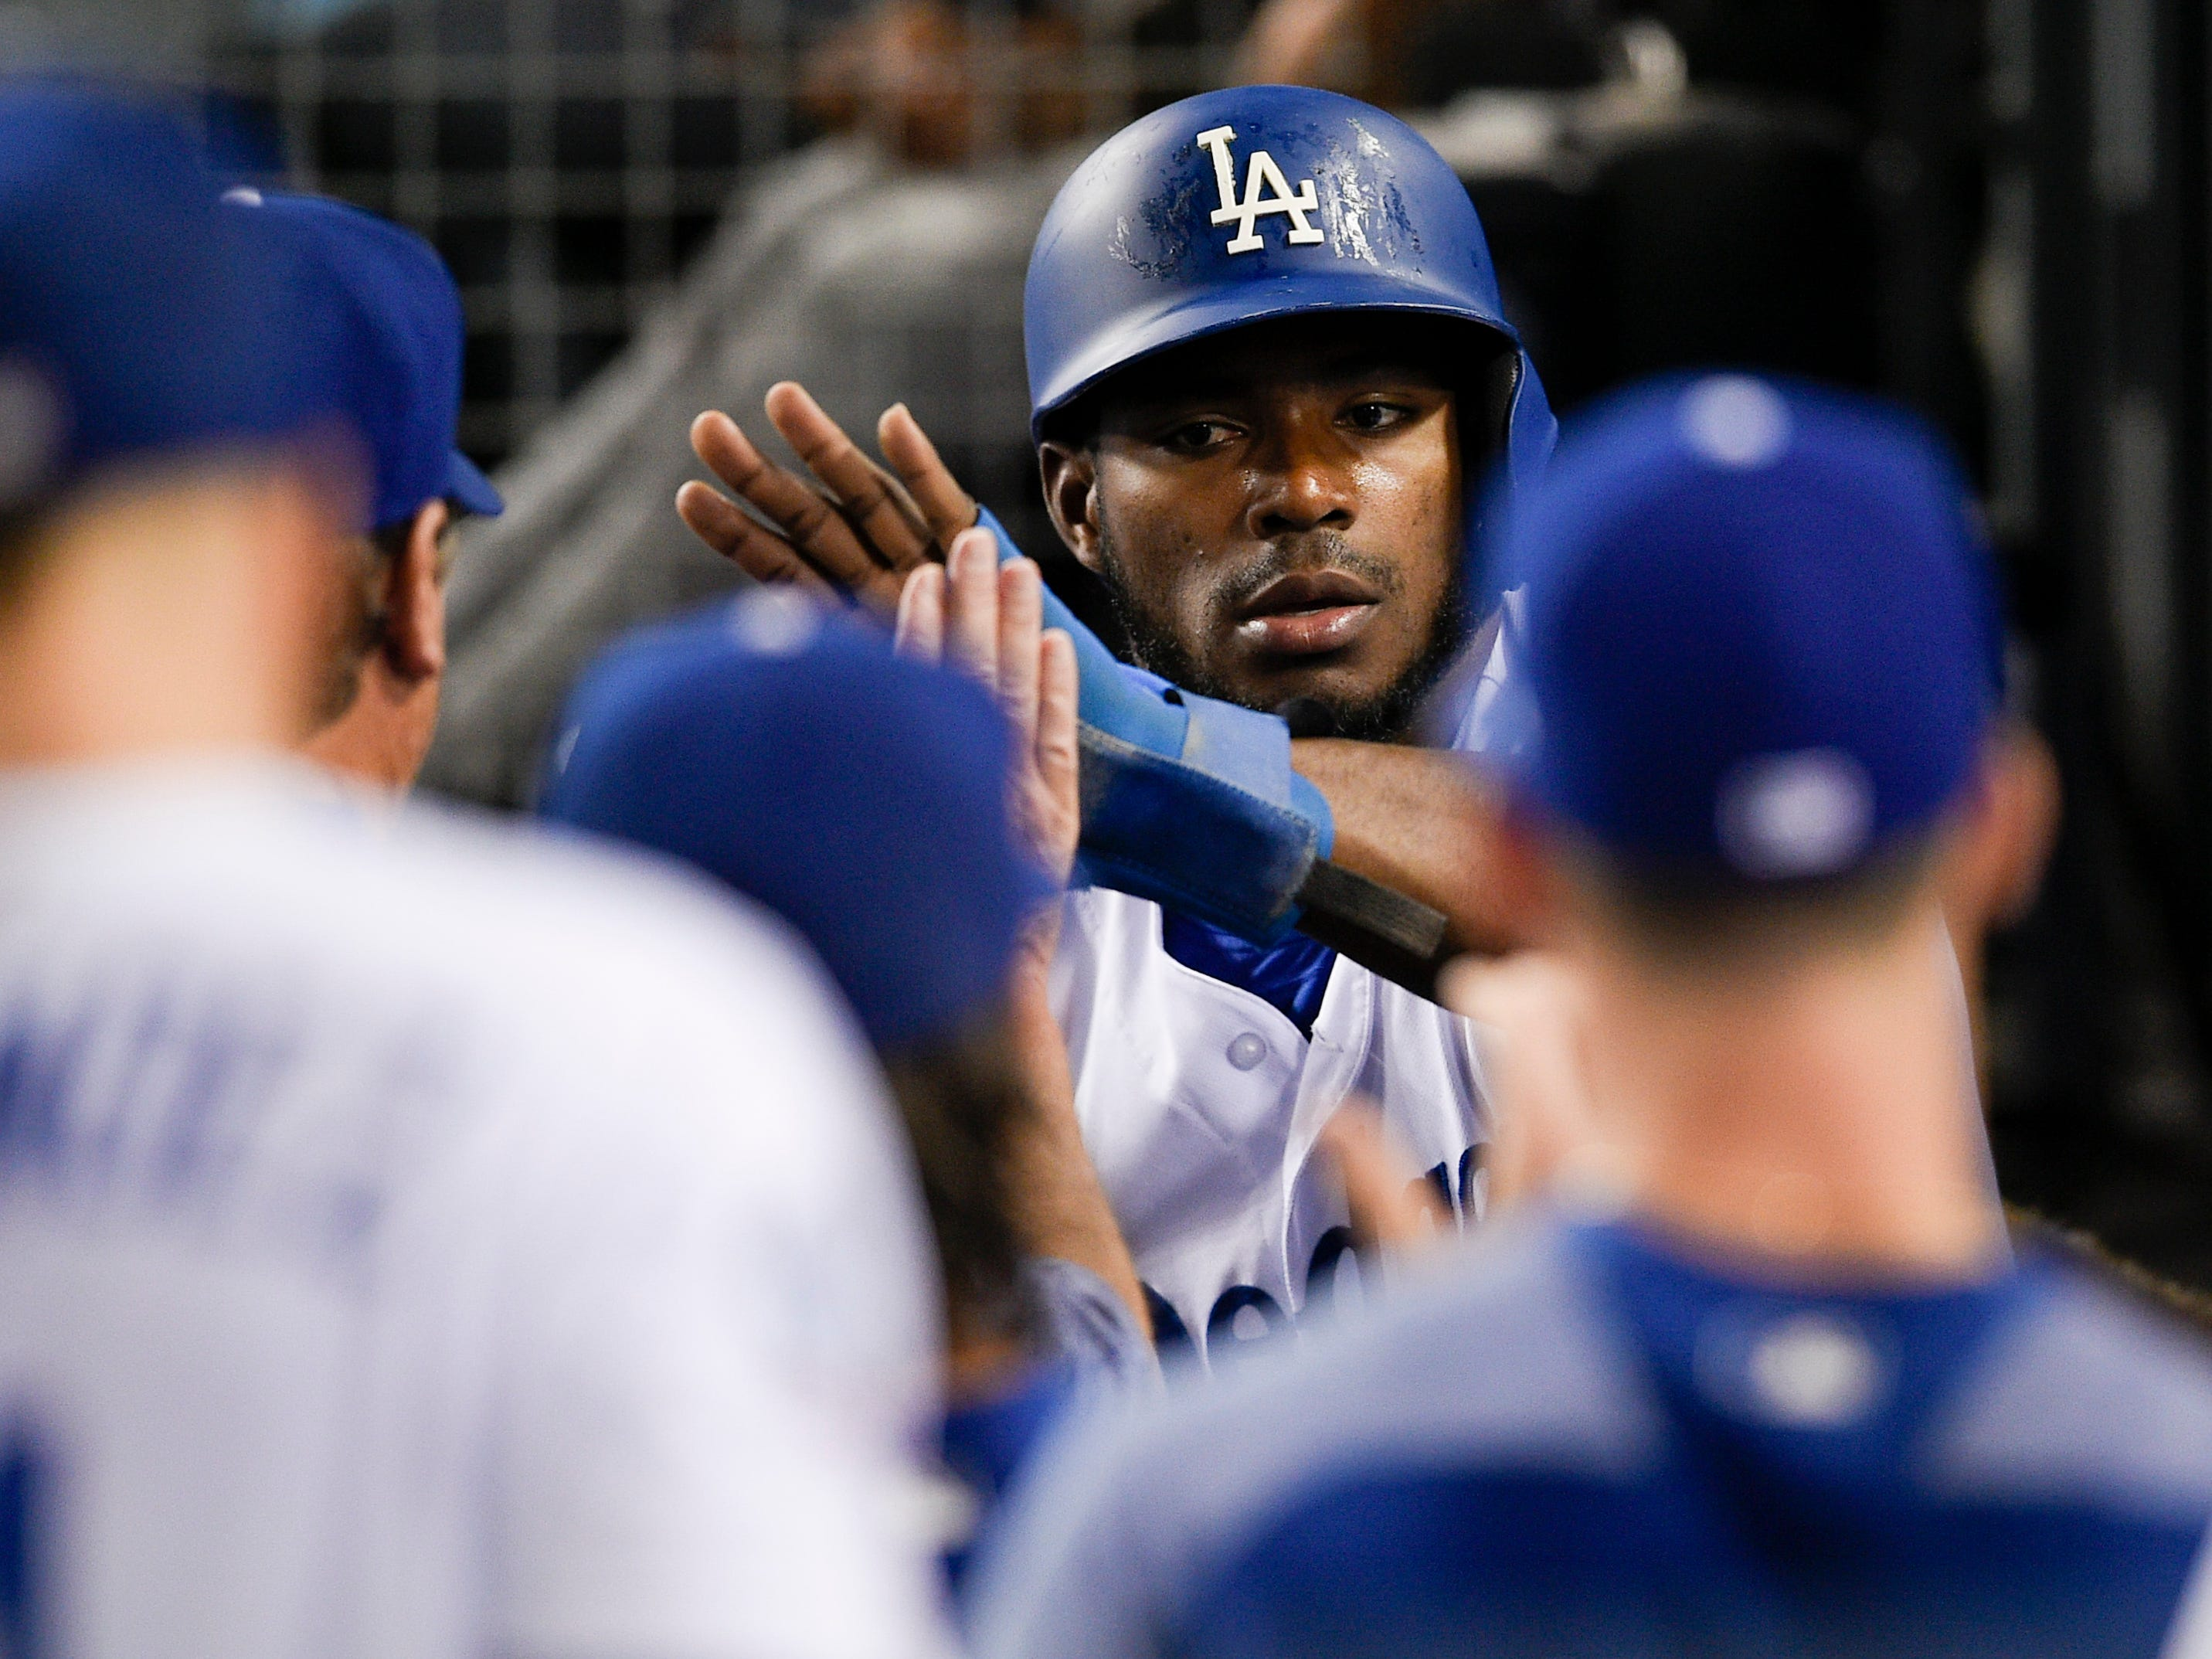 Aug 31, 2018: Los Angeles Dodgers right fielder Yasiel Puig (66) celebrates with the dugout after scoring off an RBI single by left fielder Joc Pederson (not pictured) during the third inning against the Arizona Diamondbacks at Dodger Stadium.